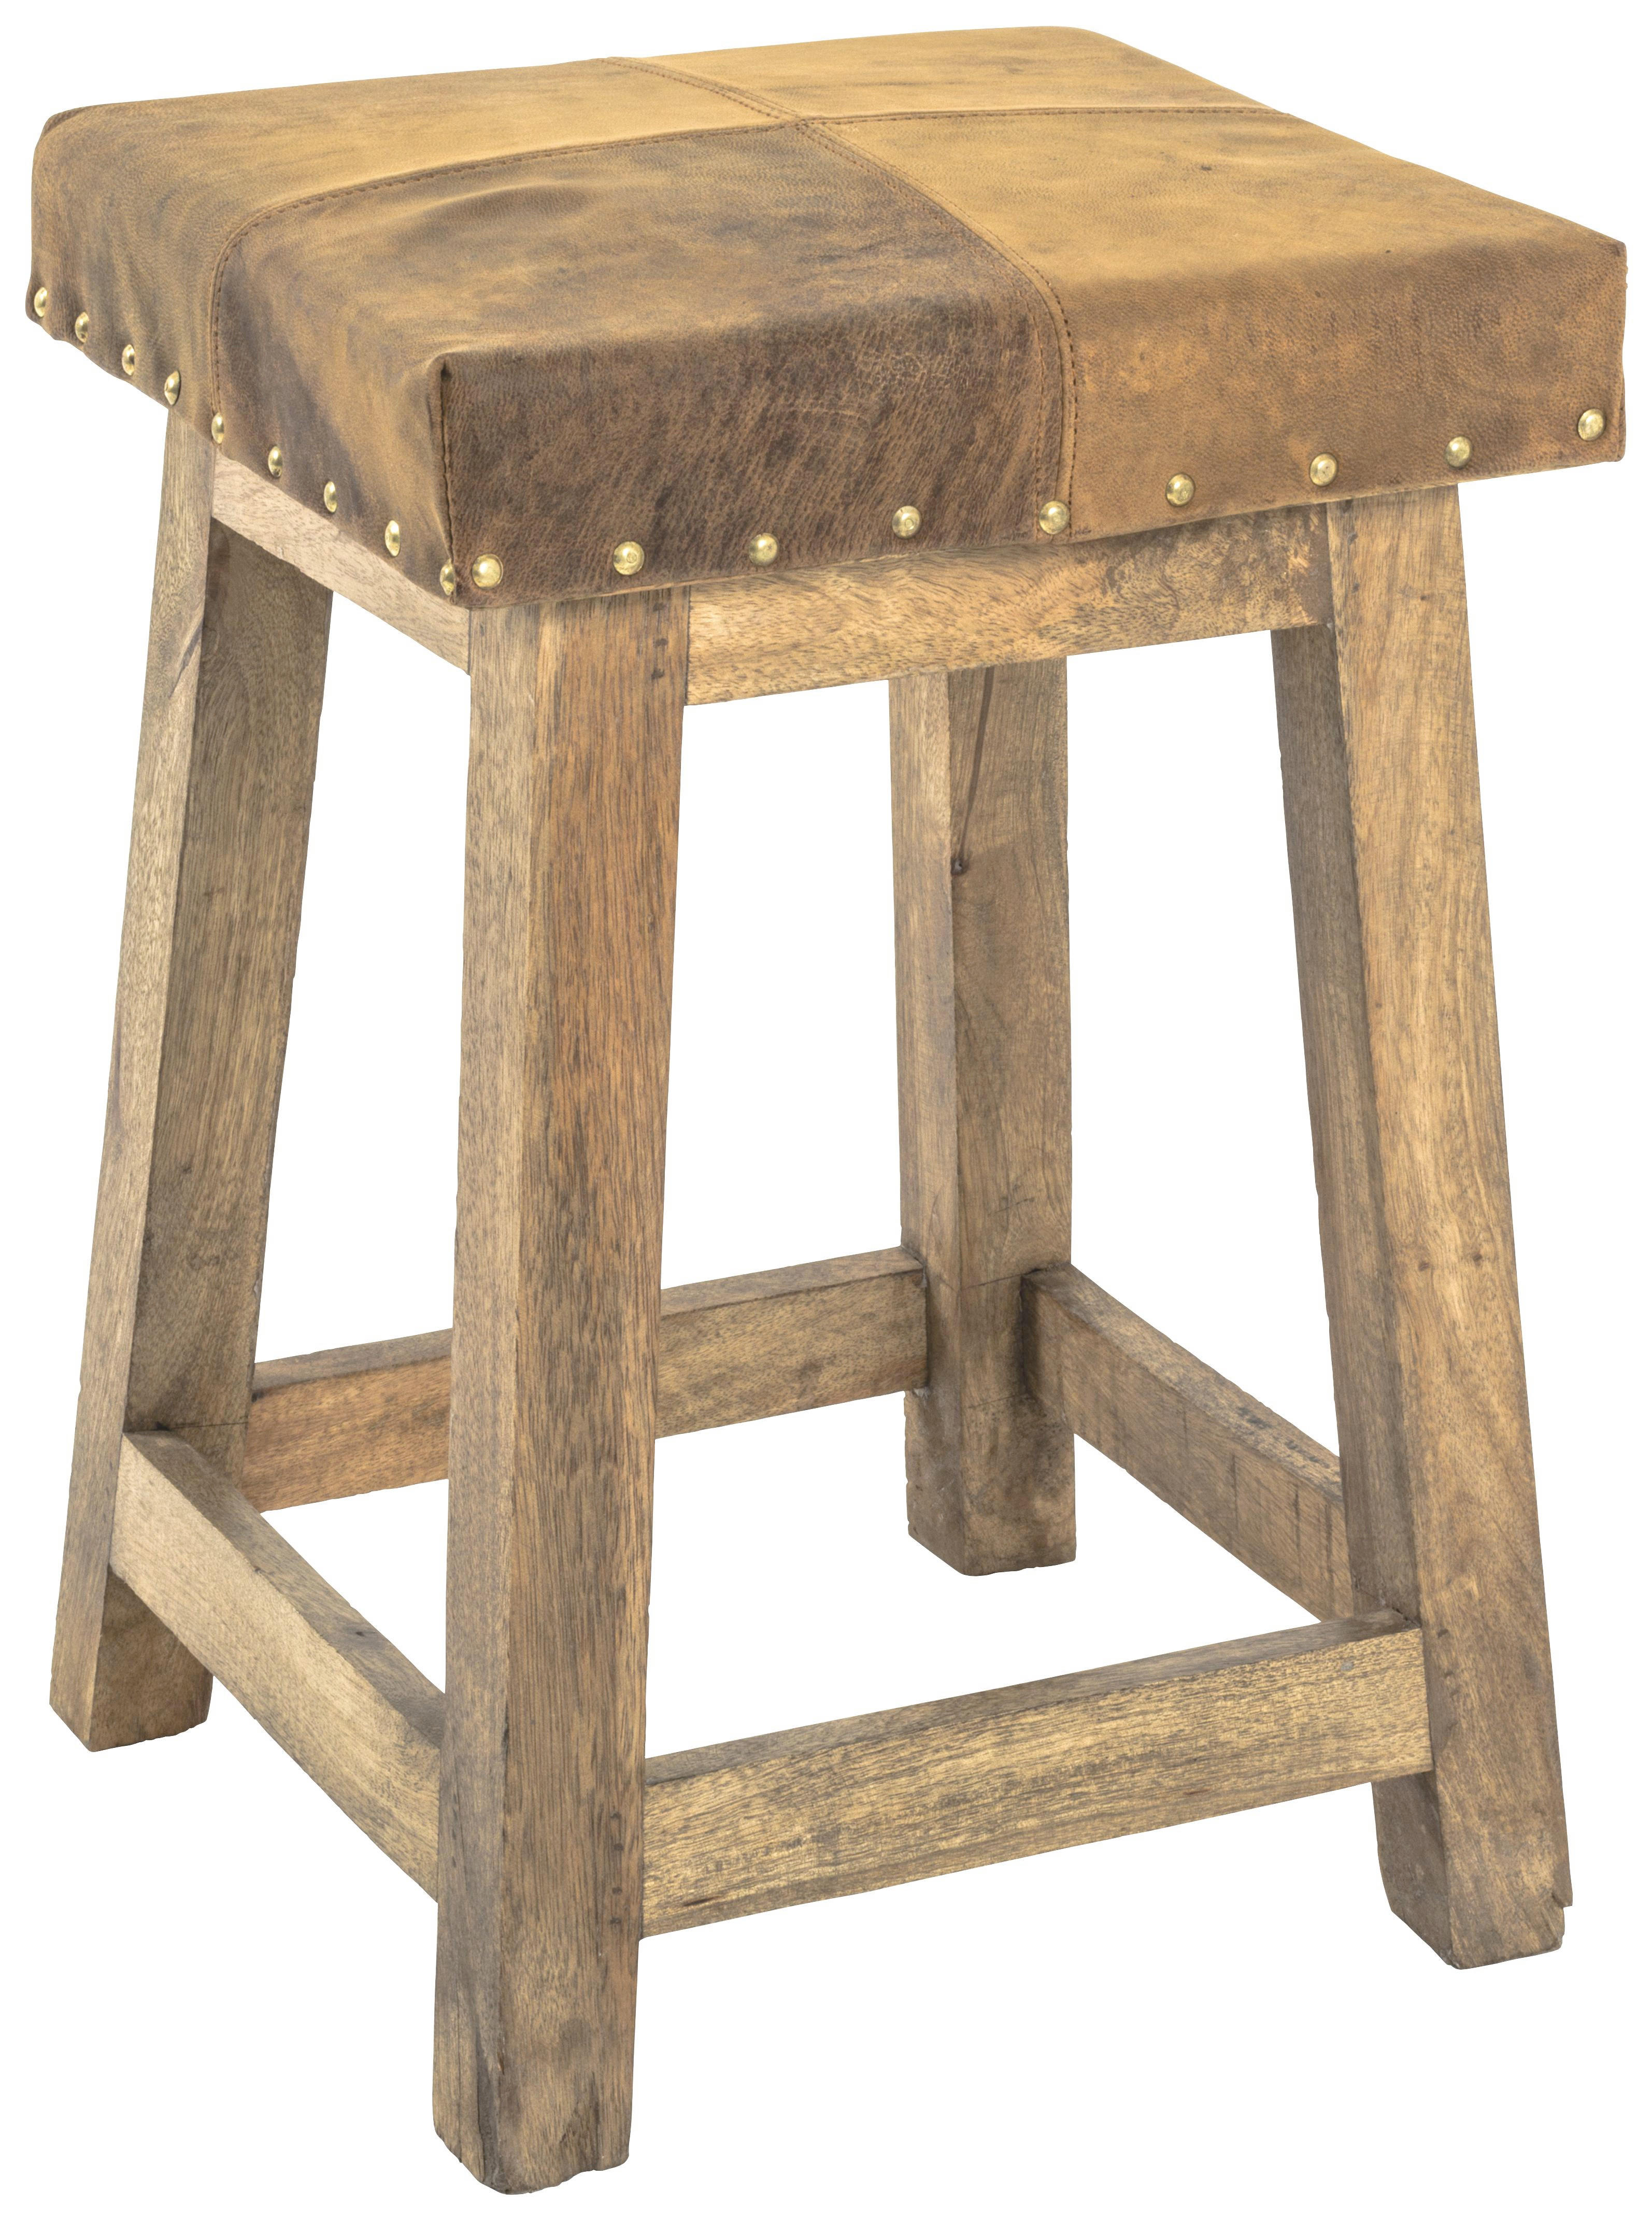 Hocker Leder Hocker In Holz Leder Braun Hellbraun Naturfarben